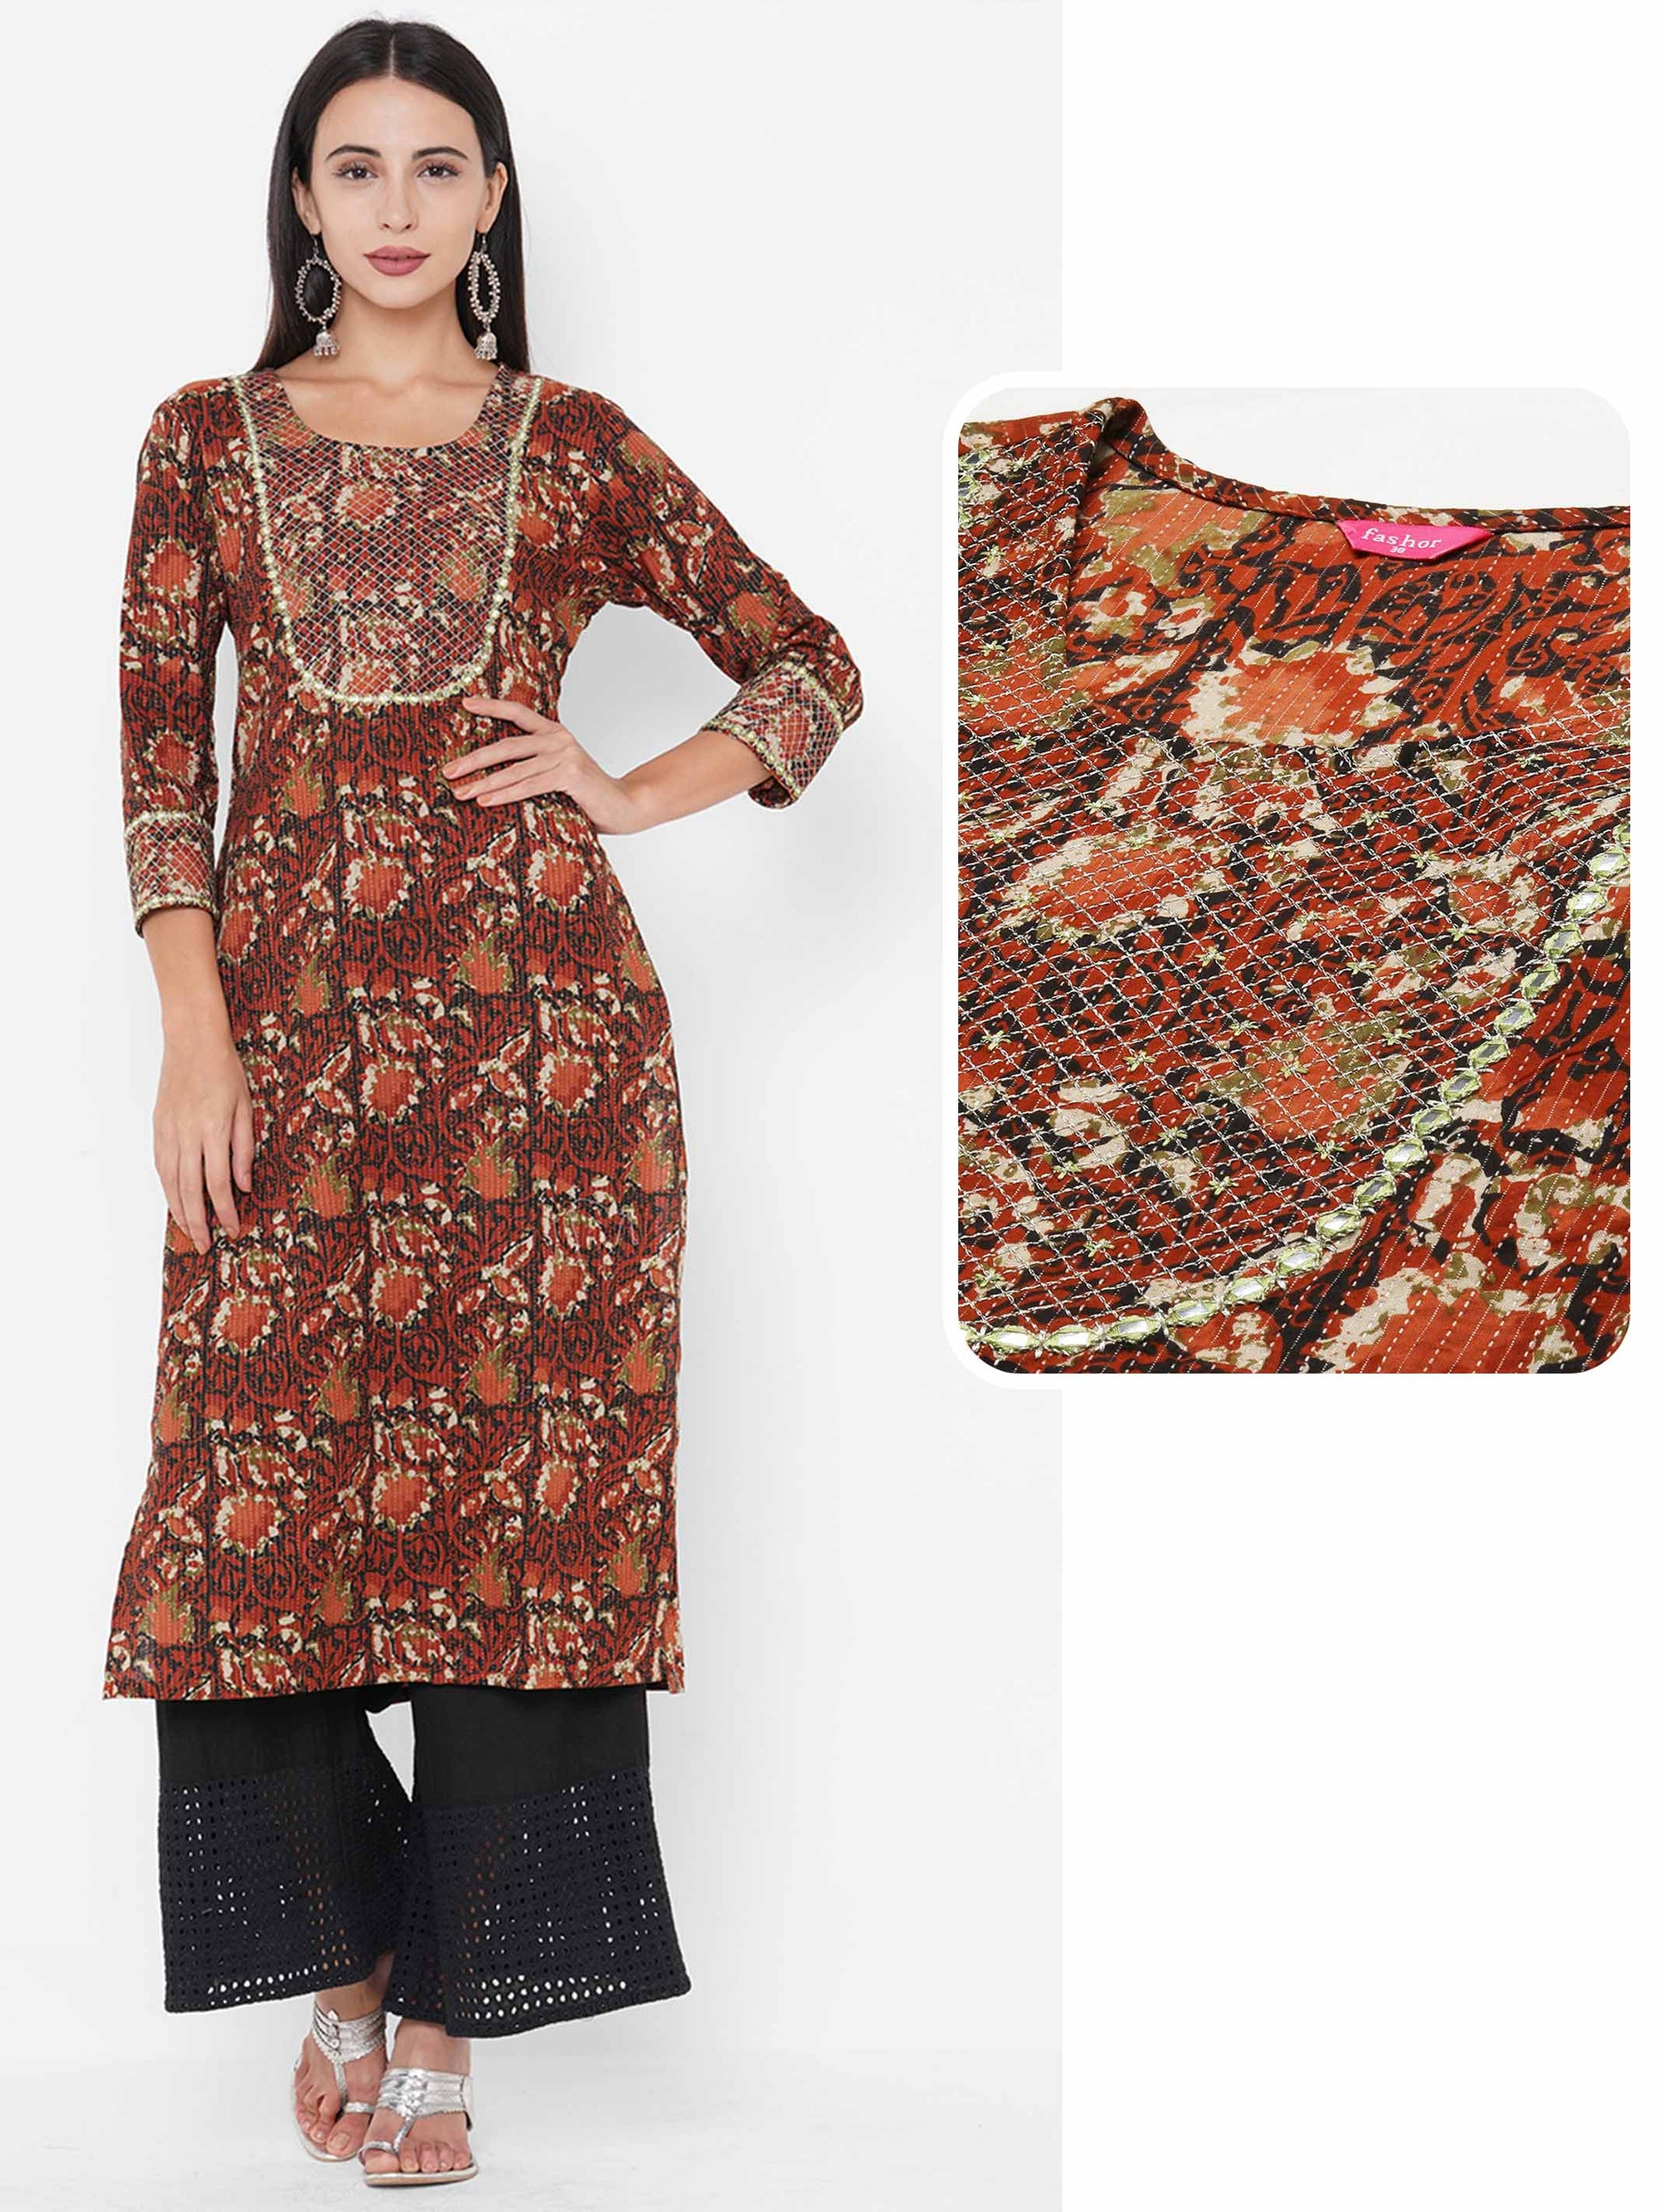 Block Printed & Zari Embroidered on Kantha Woven fabric Kurta - Rust